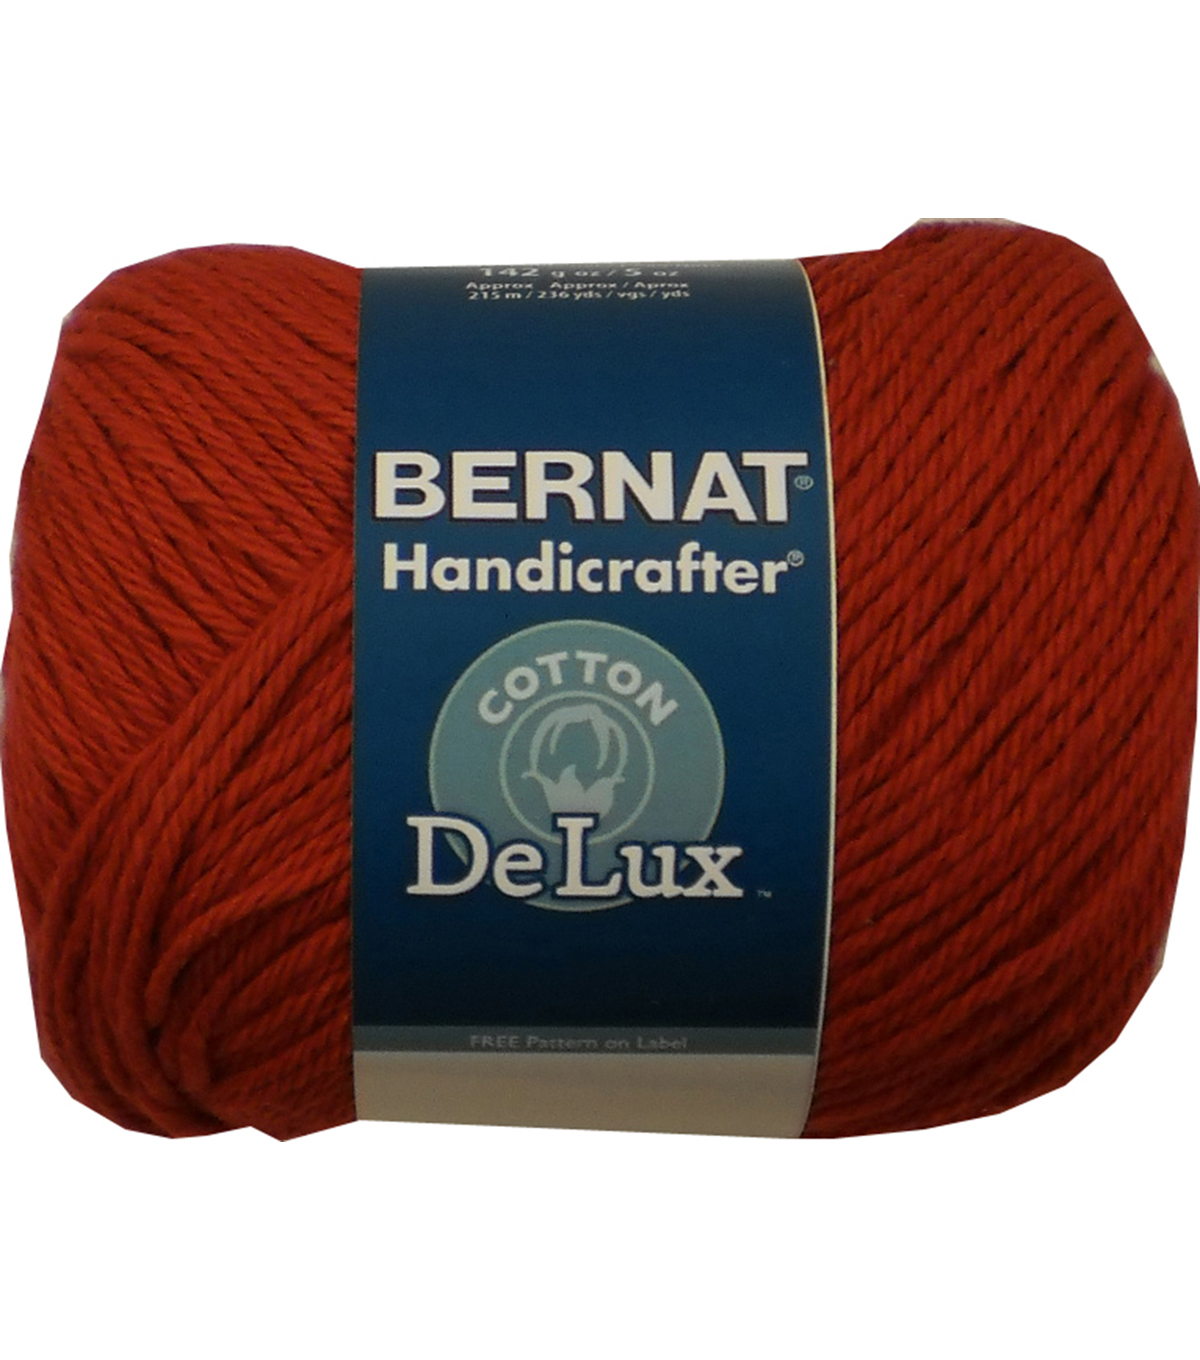 Bernat Handicrafter DeLux Cotton Yarn, Poppy Seed